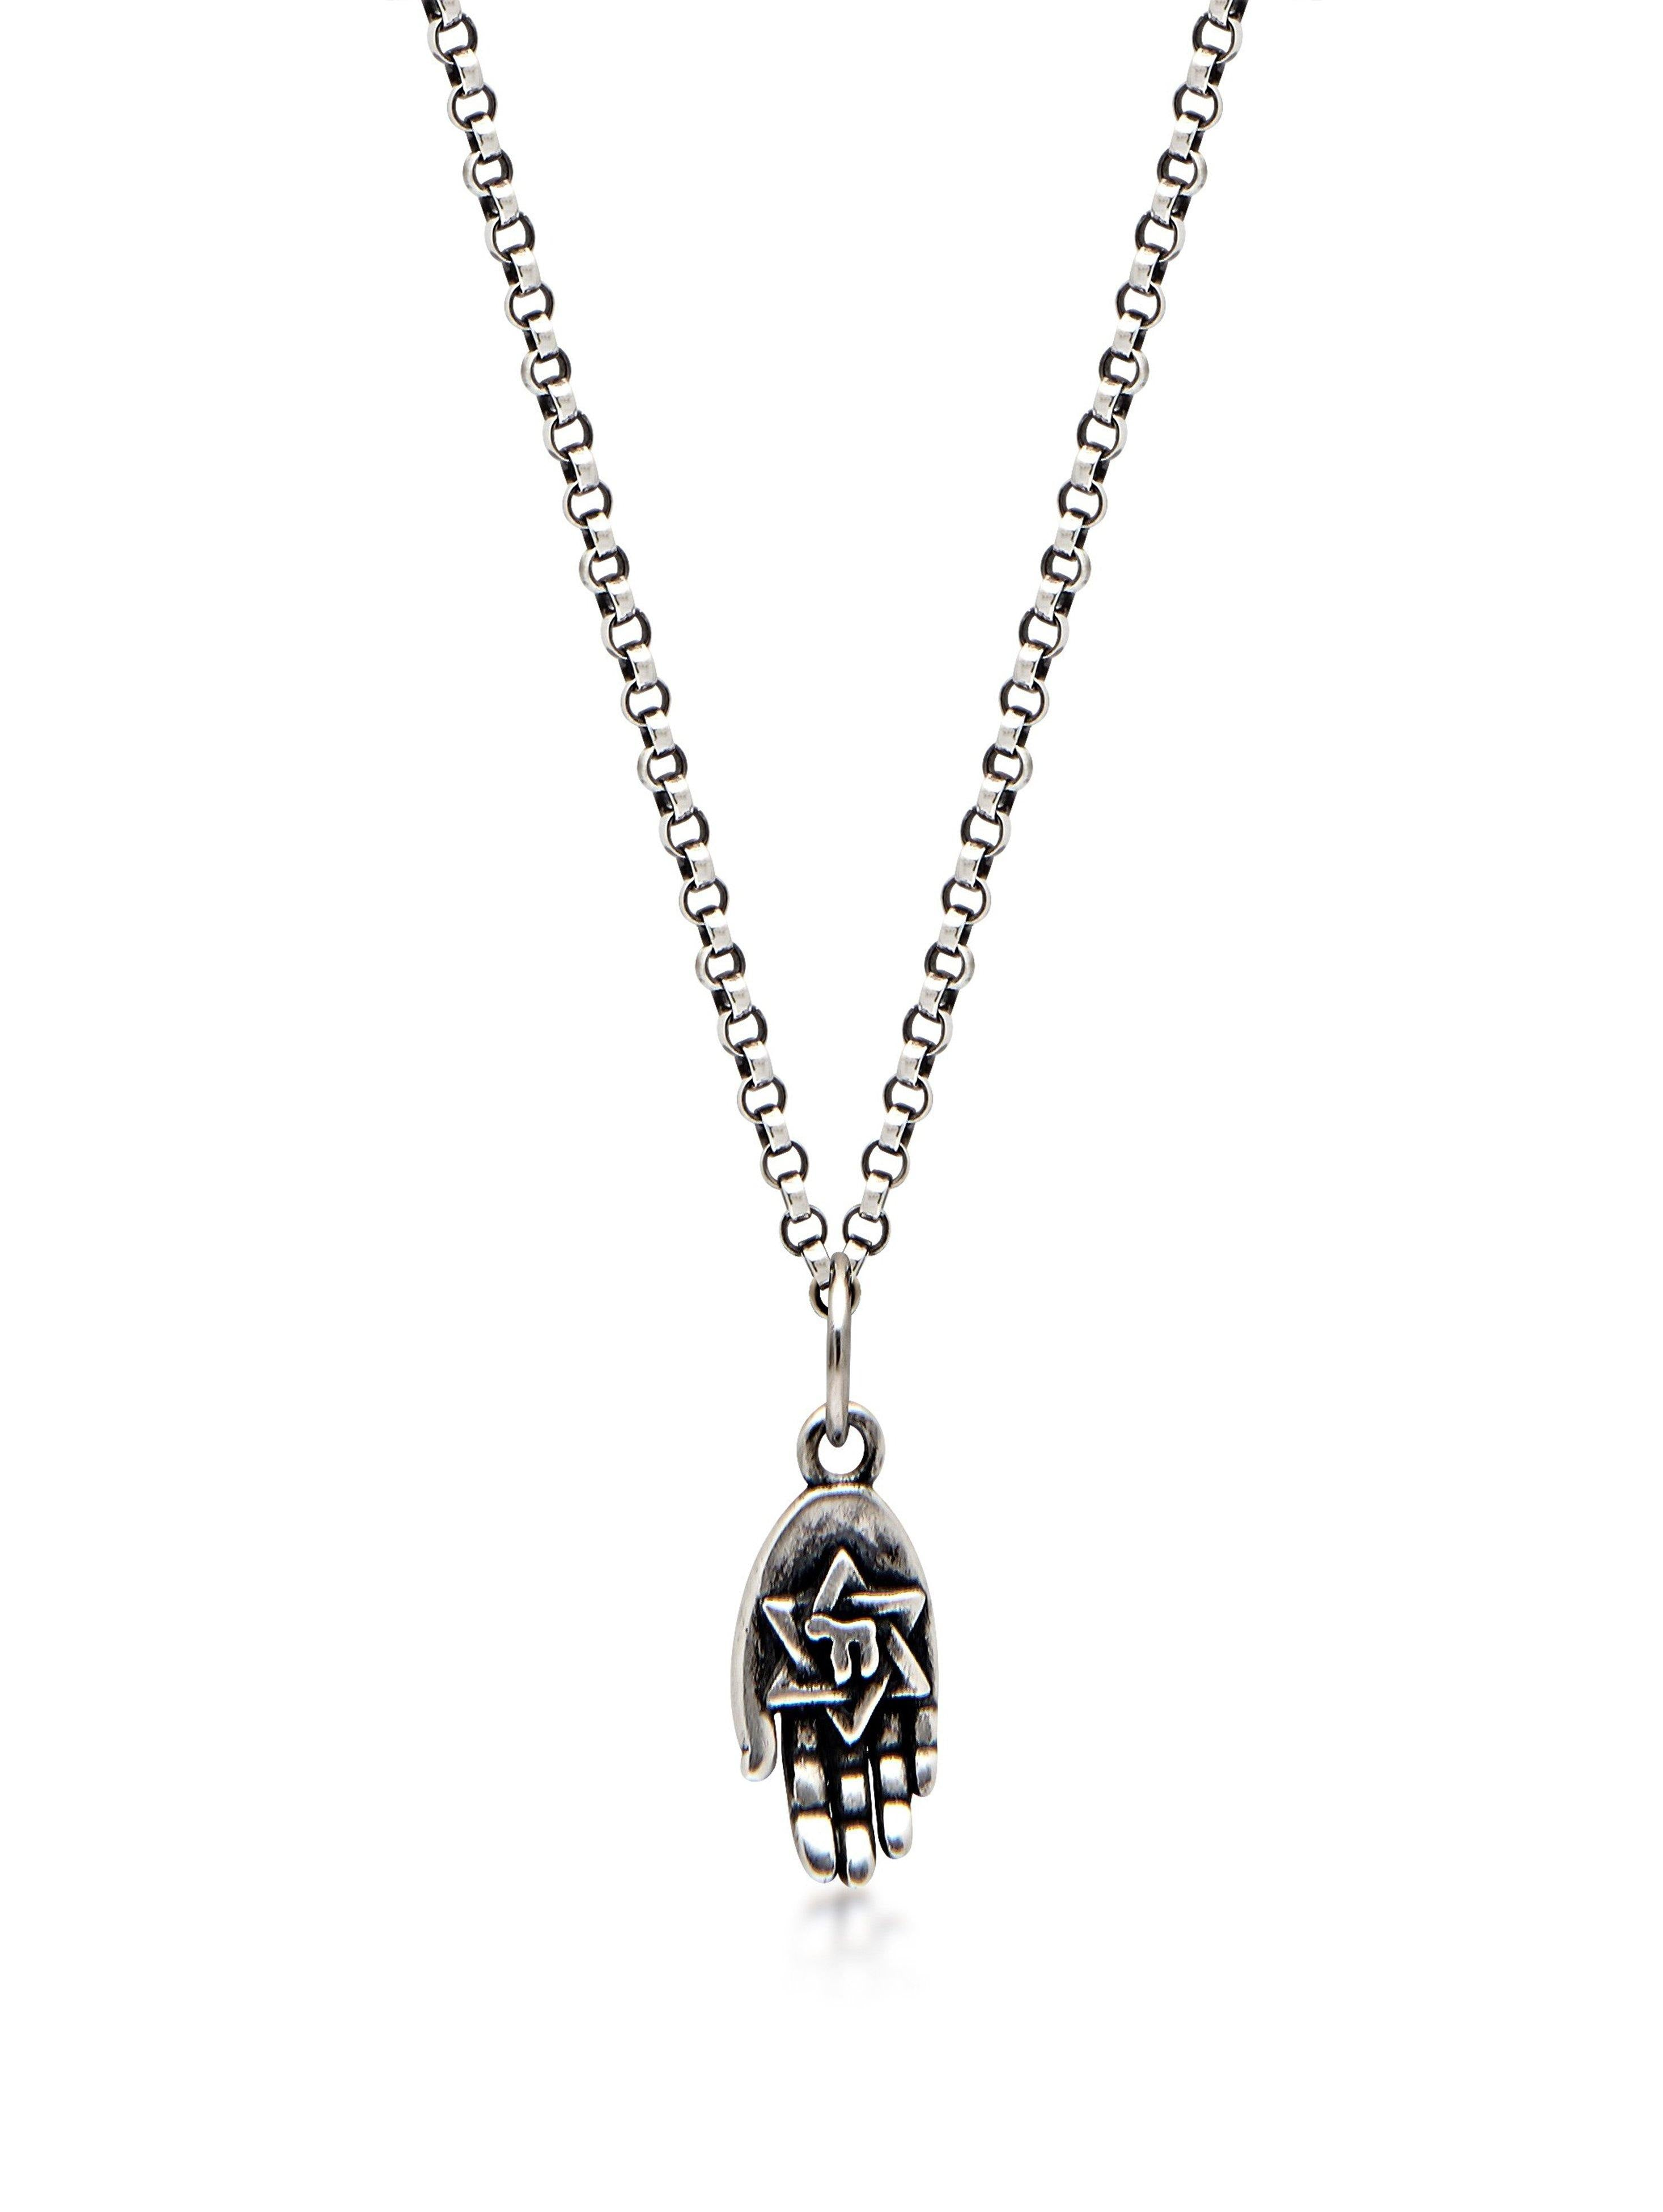 Men's Silver Necklace with Hamsa Hand Pendant